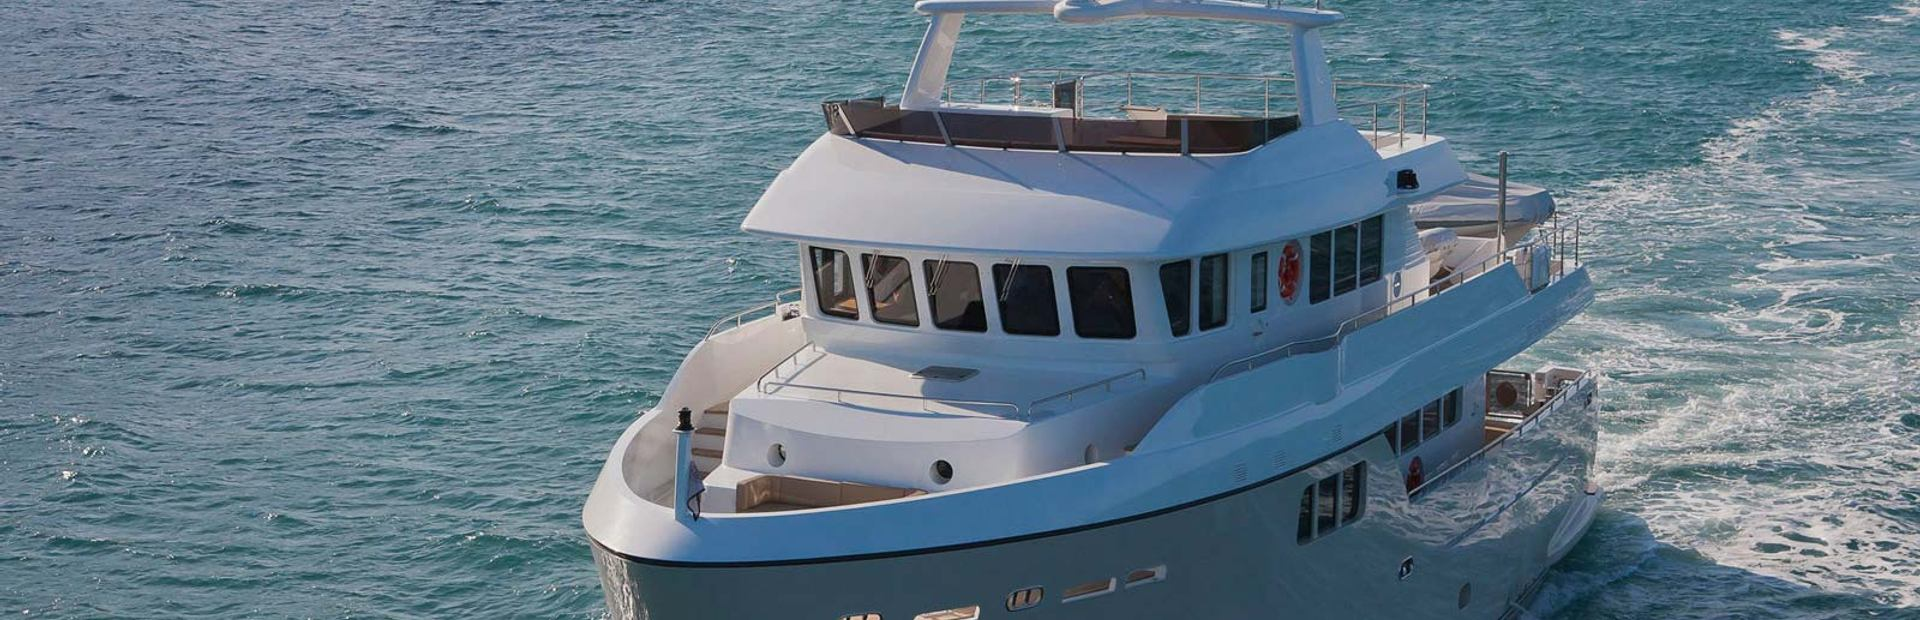 Cantiere Delle Marche Darwin 86 Yacht Charter